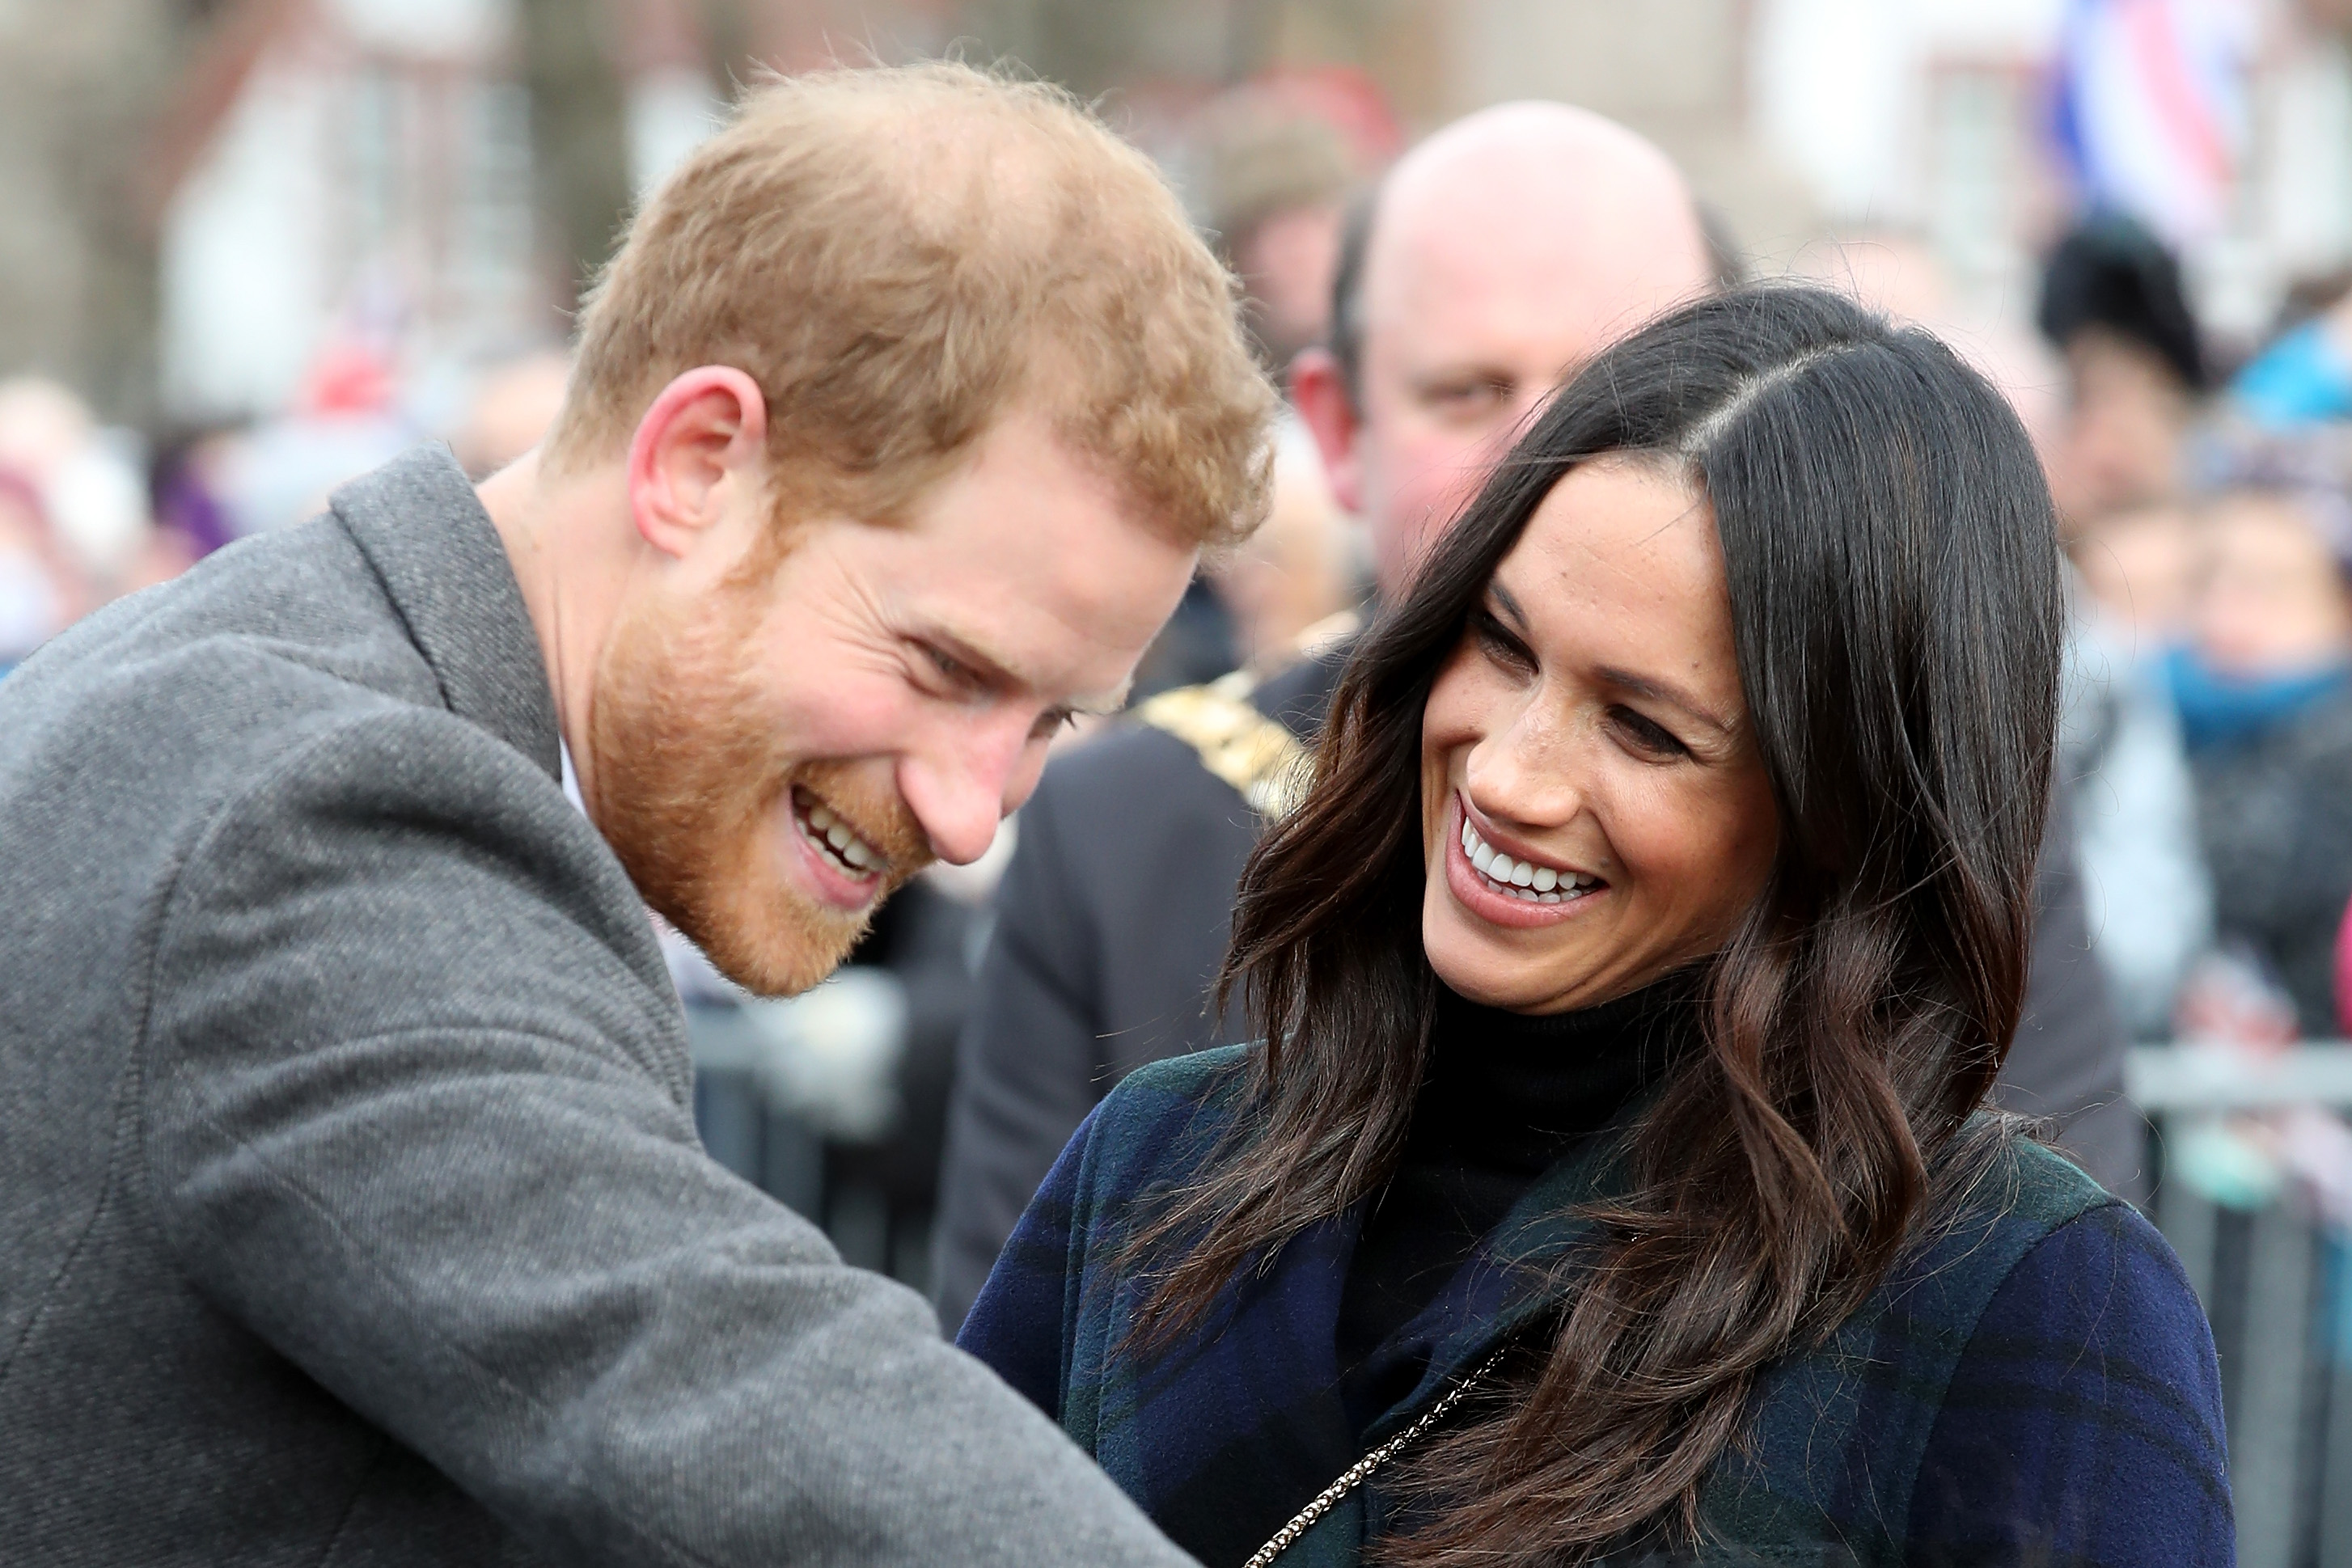 Meghan Markle's sweet nickname from her time in Toronto has been revealed